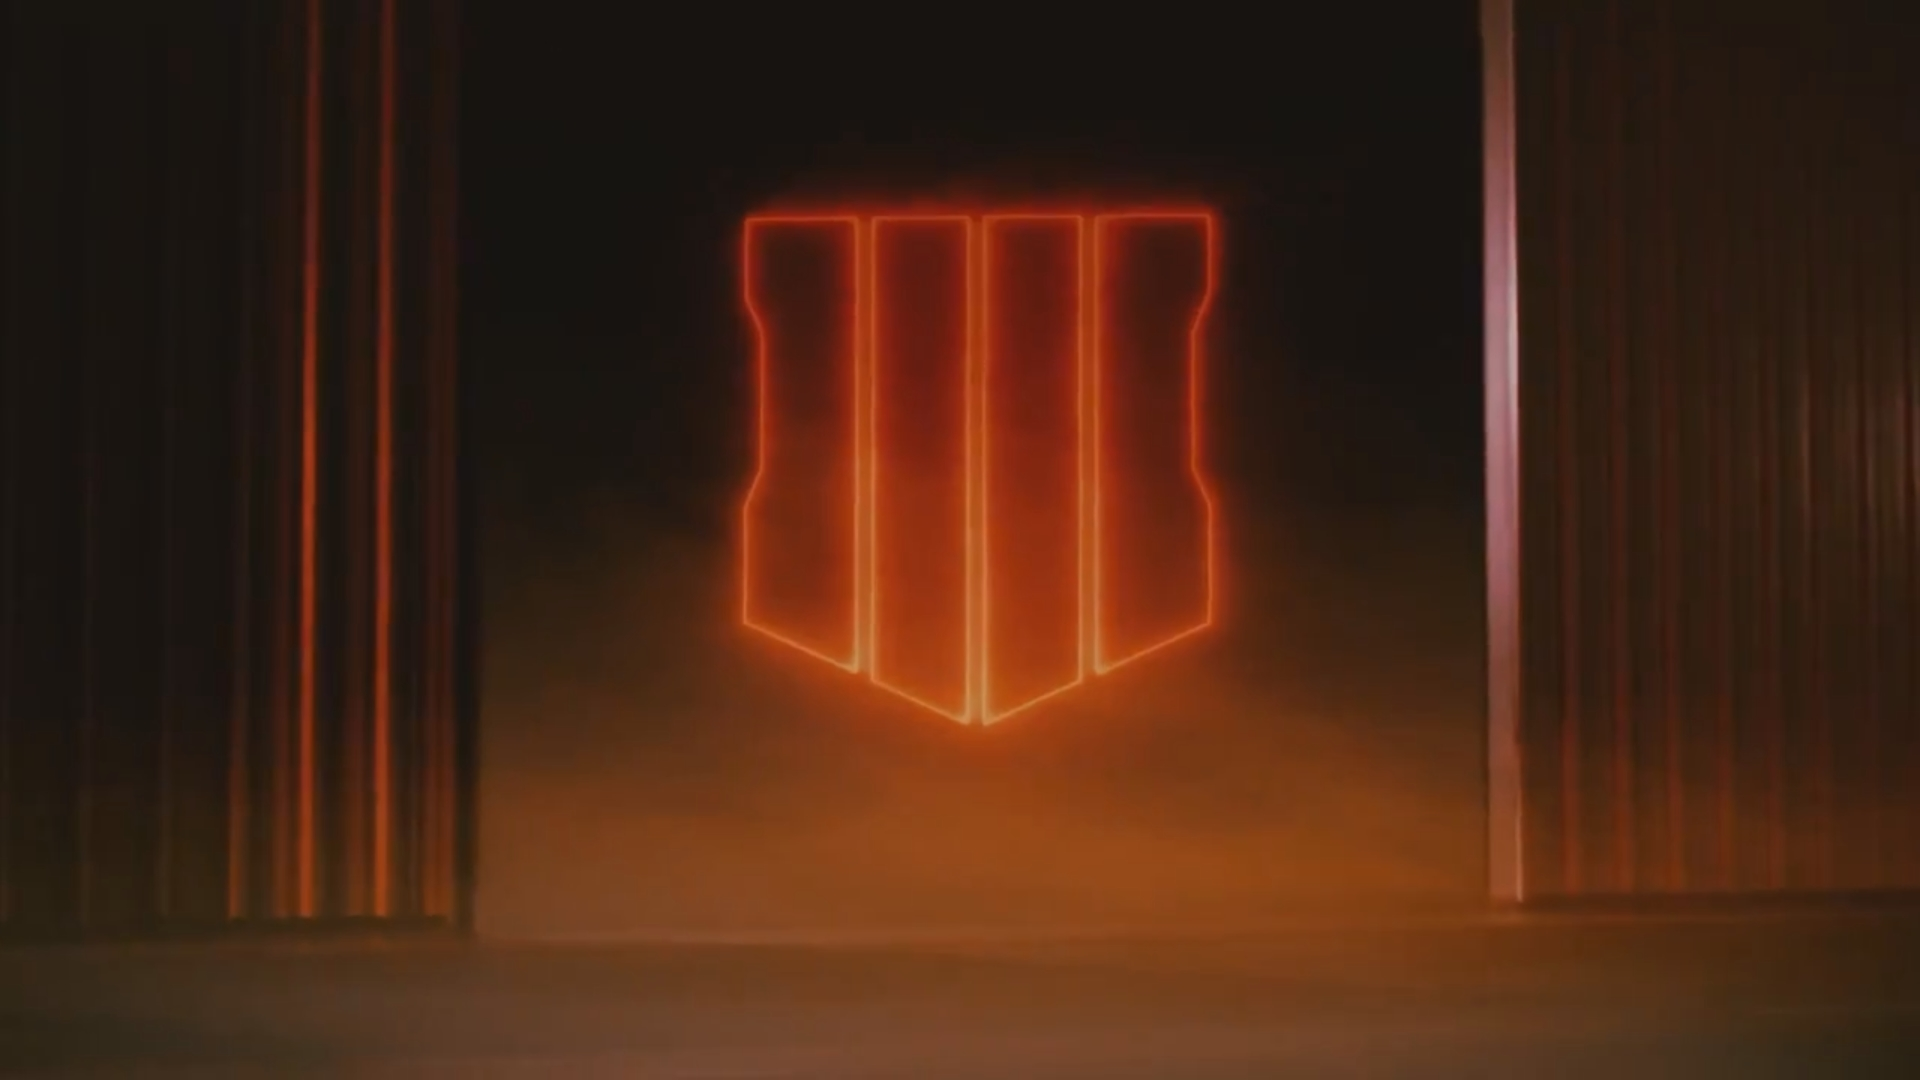 Call Of Duty Black Ops 4 Box Art Leaks Just 12 Hours Before